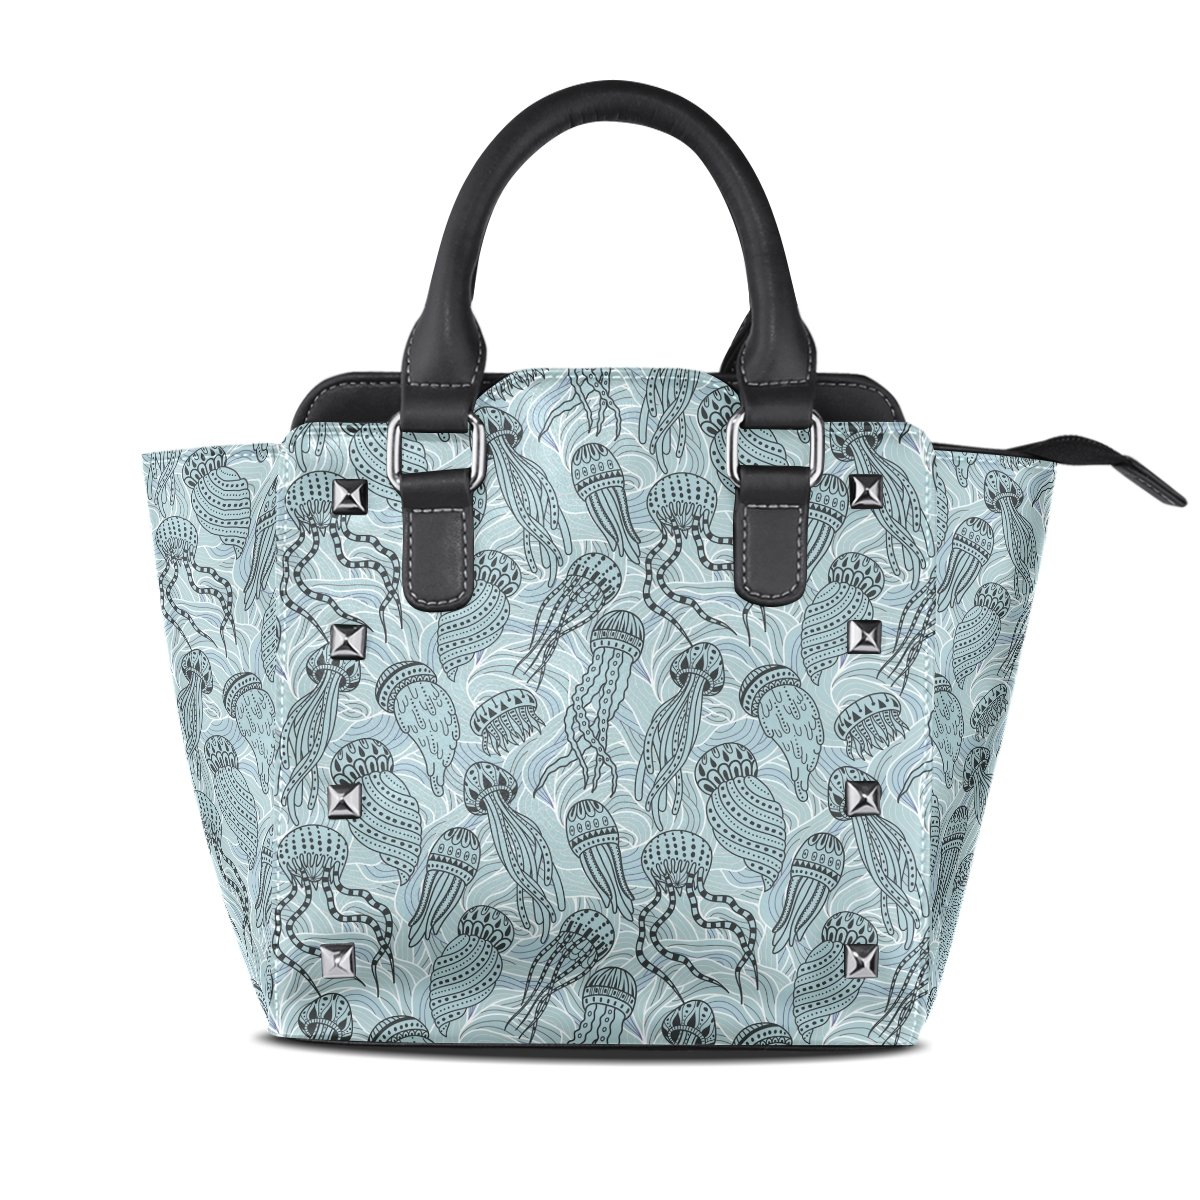 Womens Genuine Leather Hangbags Tote Bags Jellyfish Purse Shoulder Bags